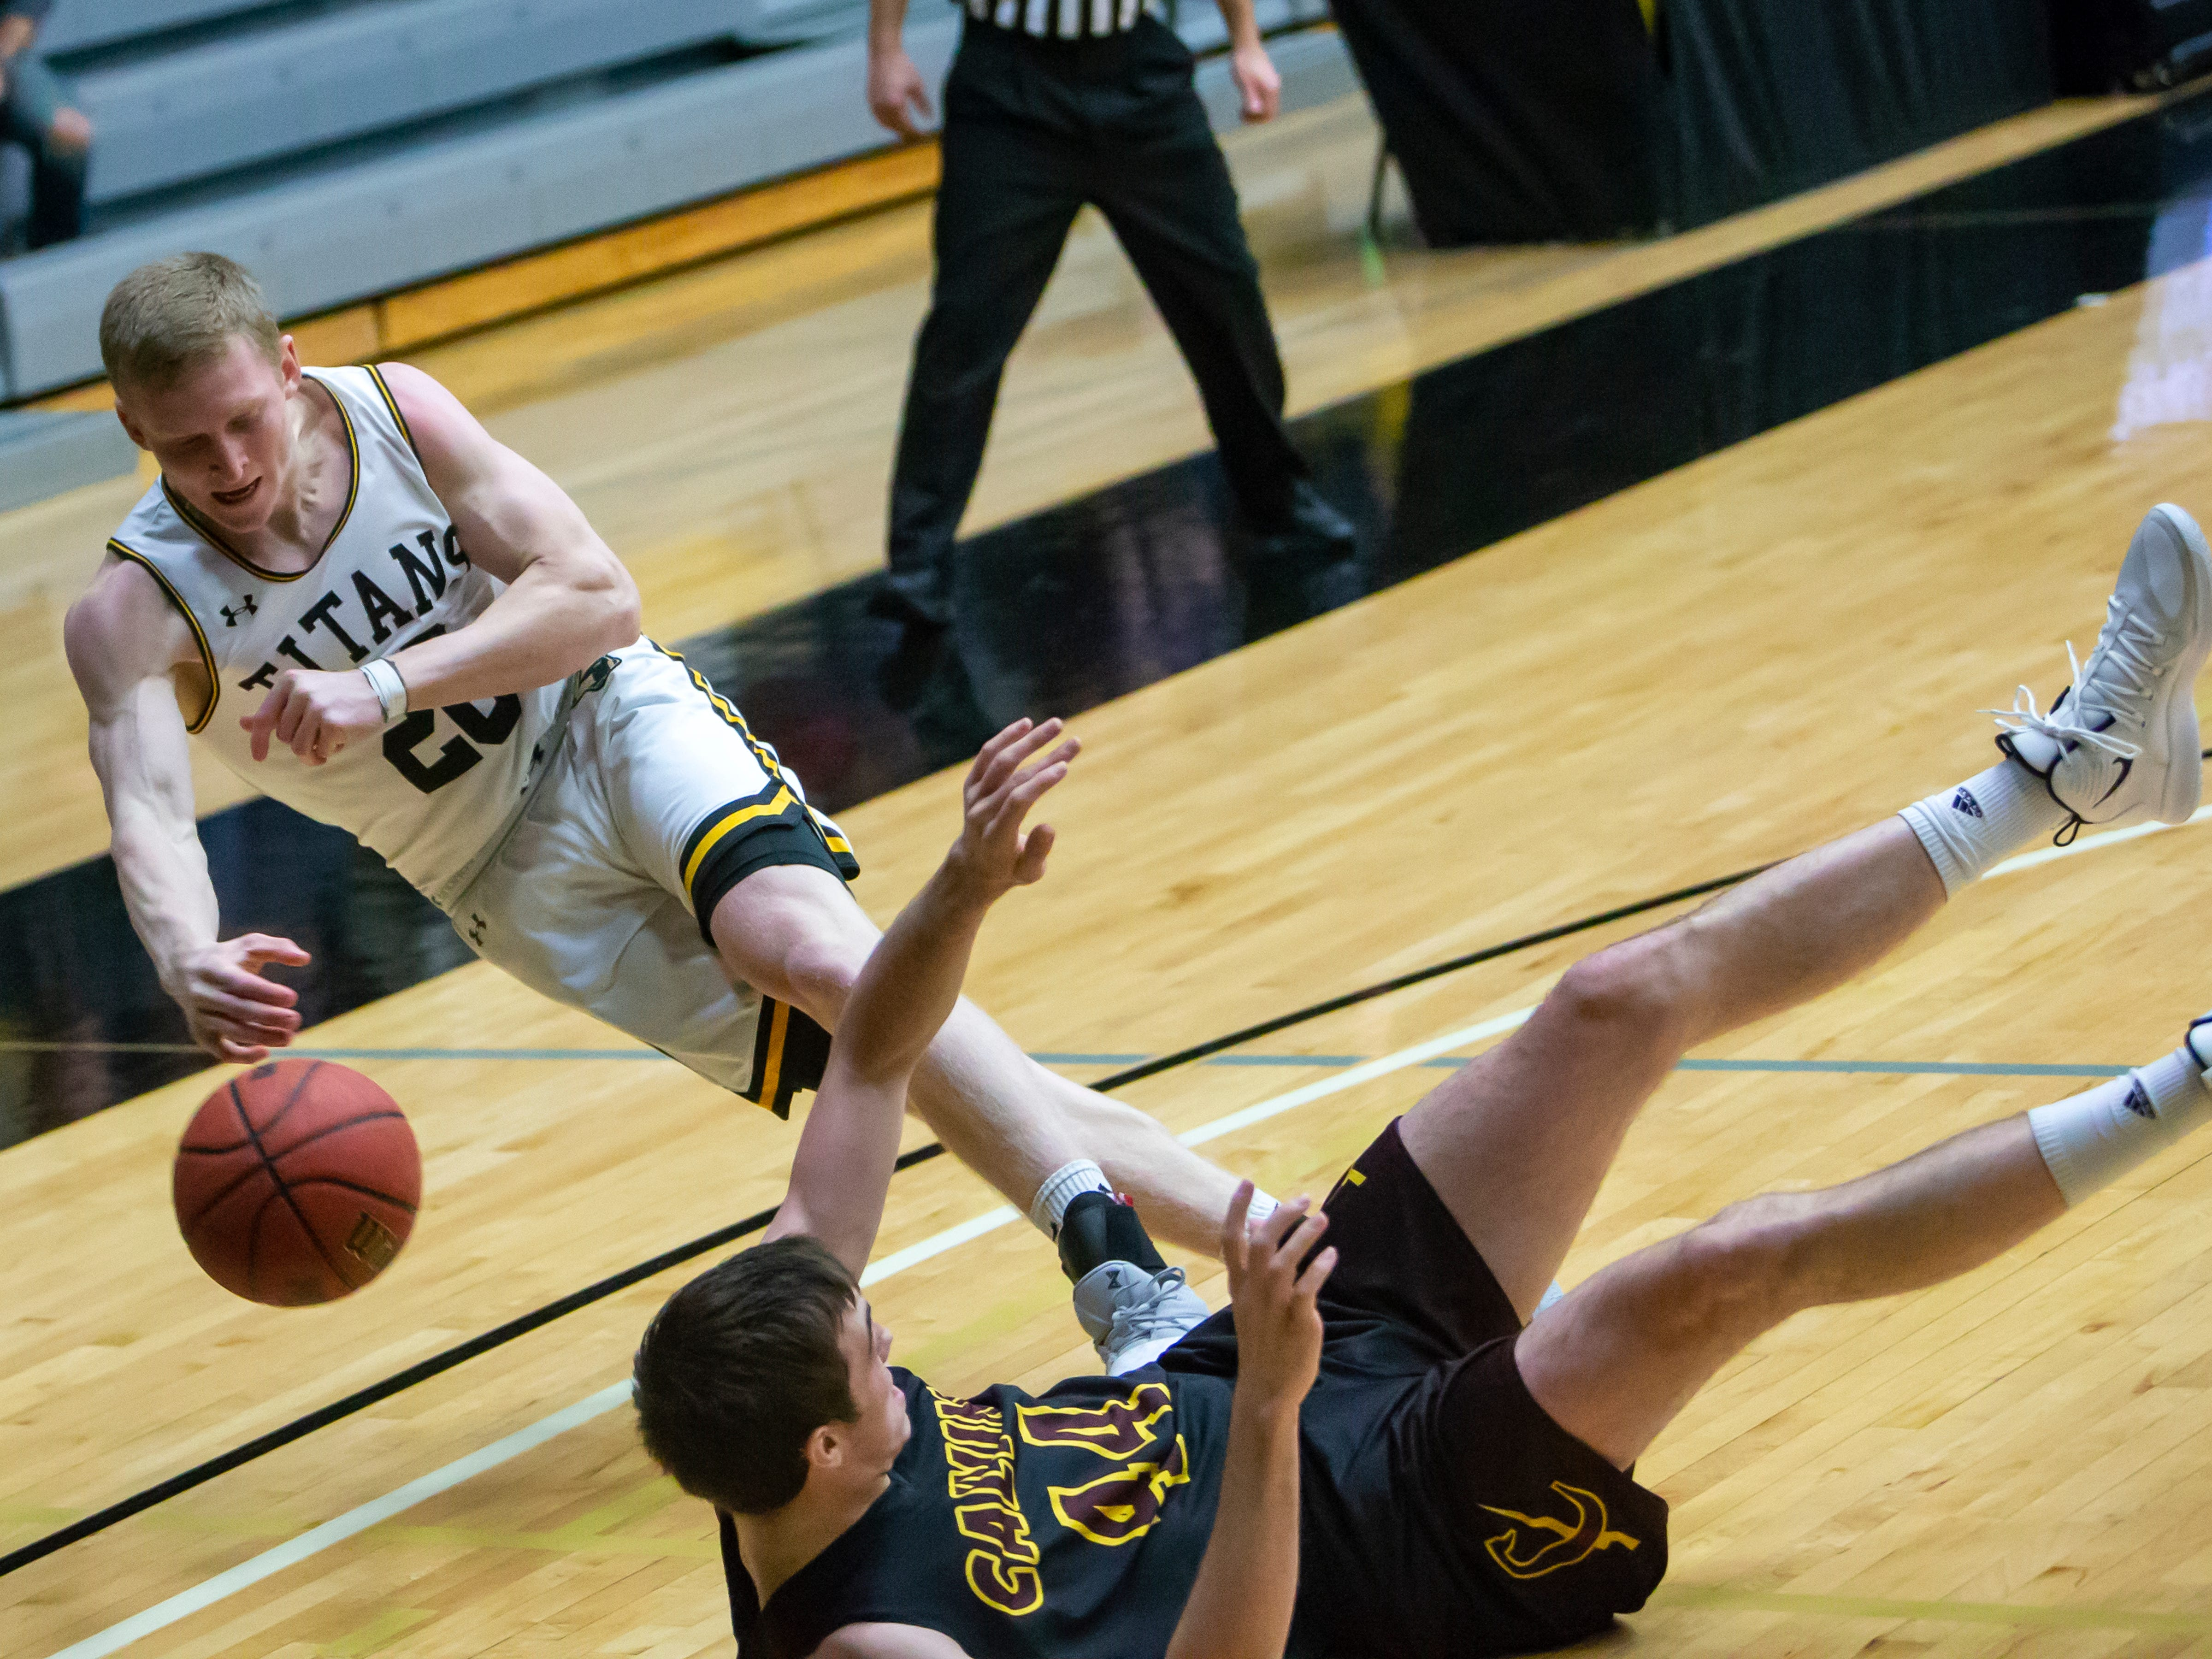 UW-Oshkosh's Connor Duax attempts to save the ball from out of bounds at the Kolf Sports Center on Saturday, December 8, 2018.